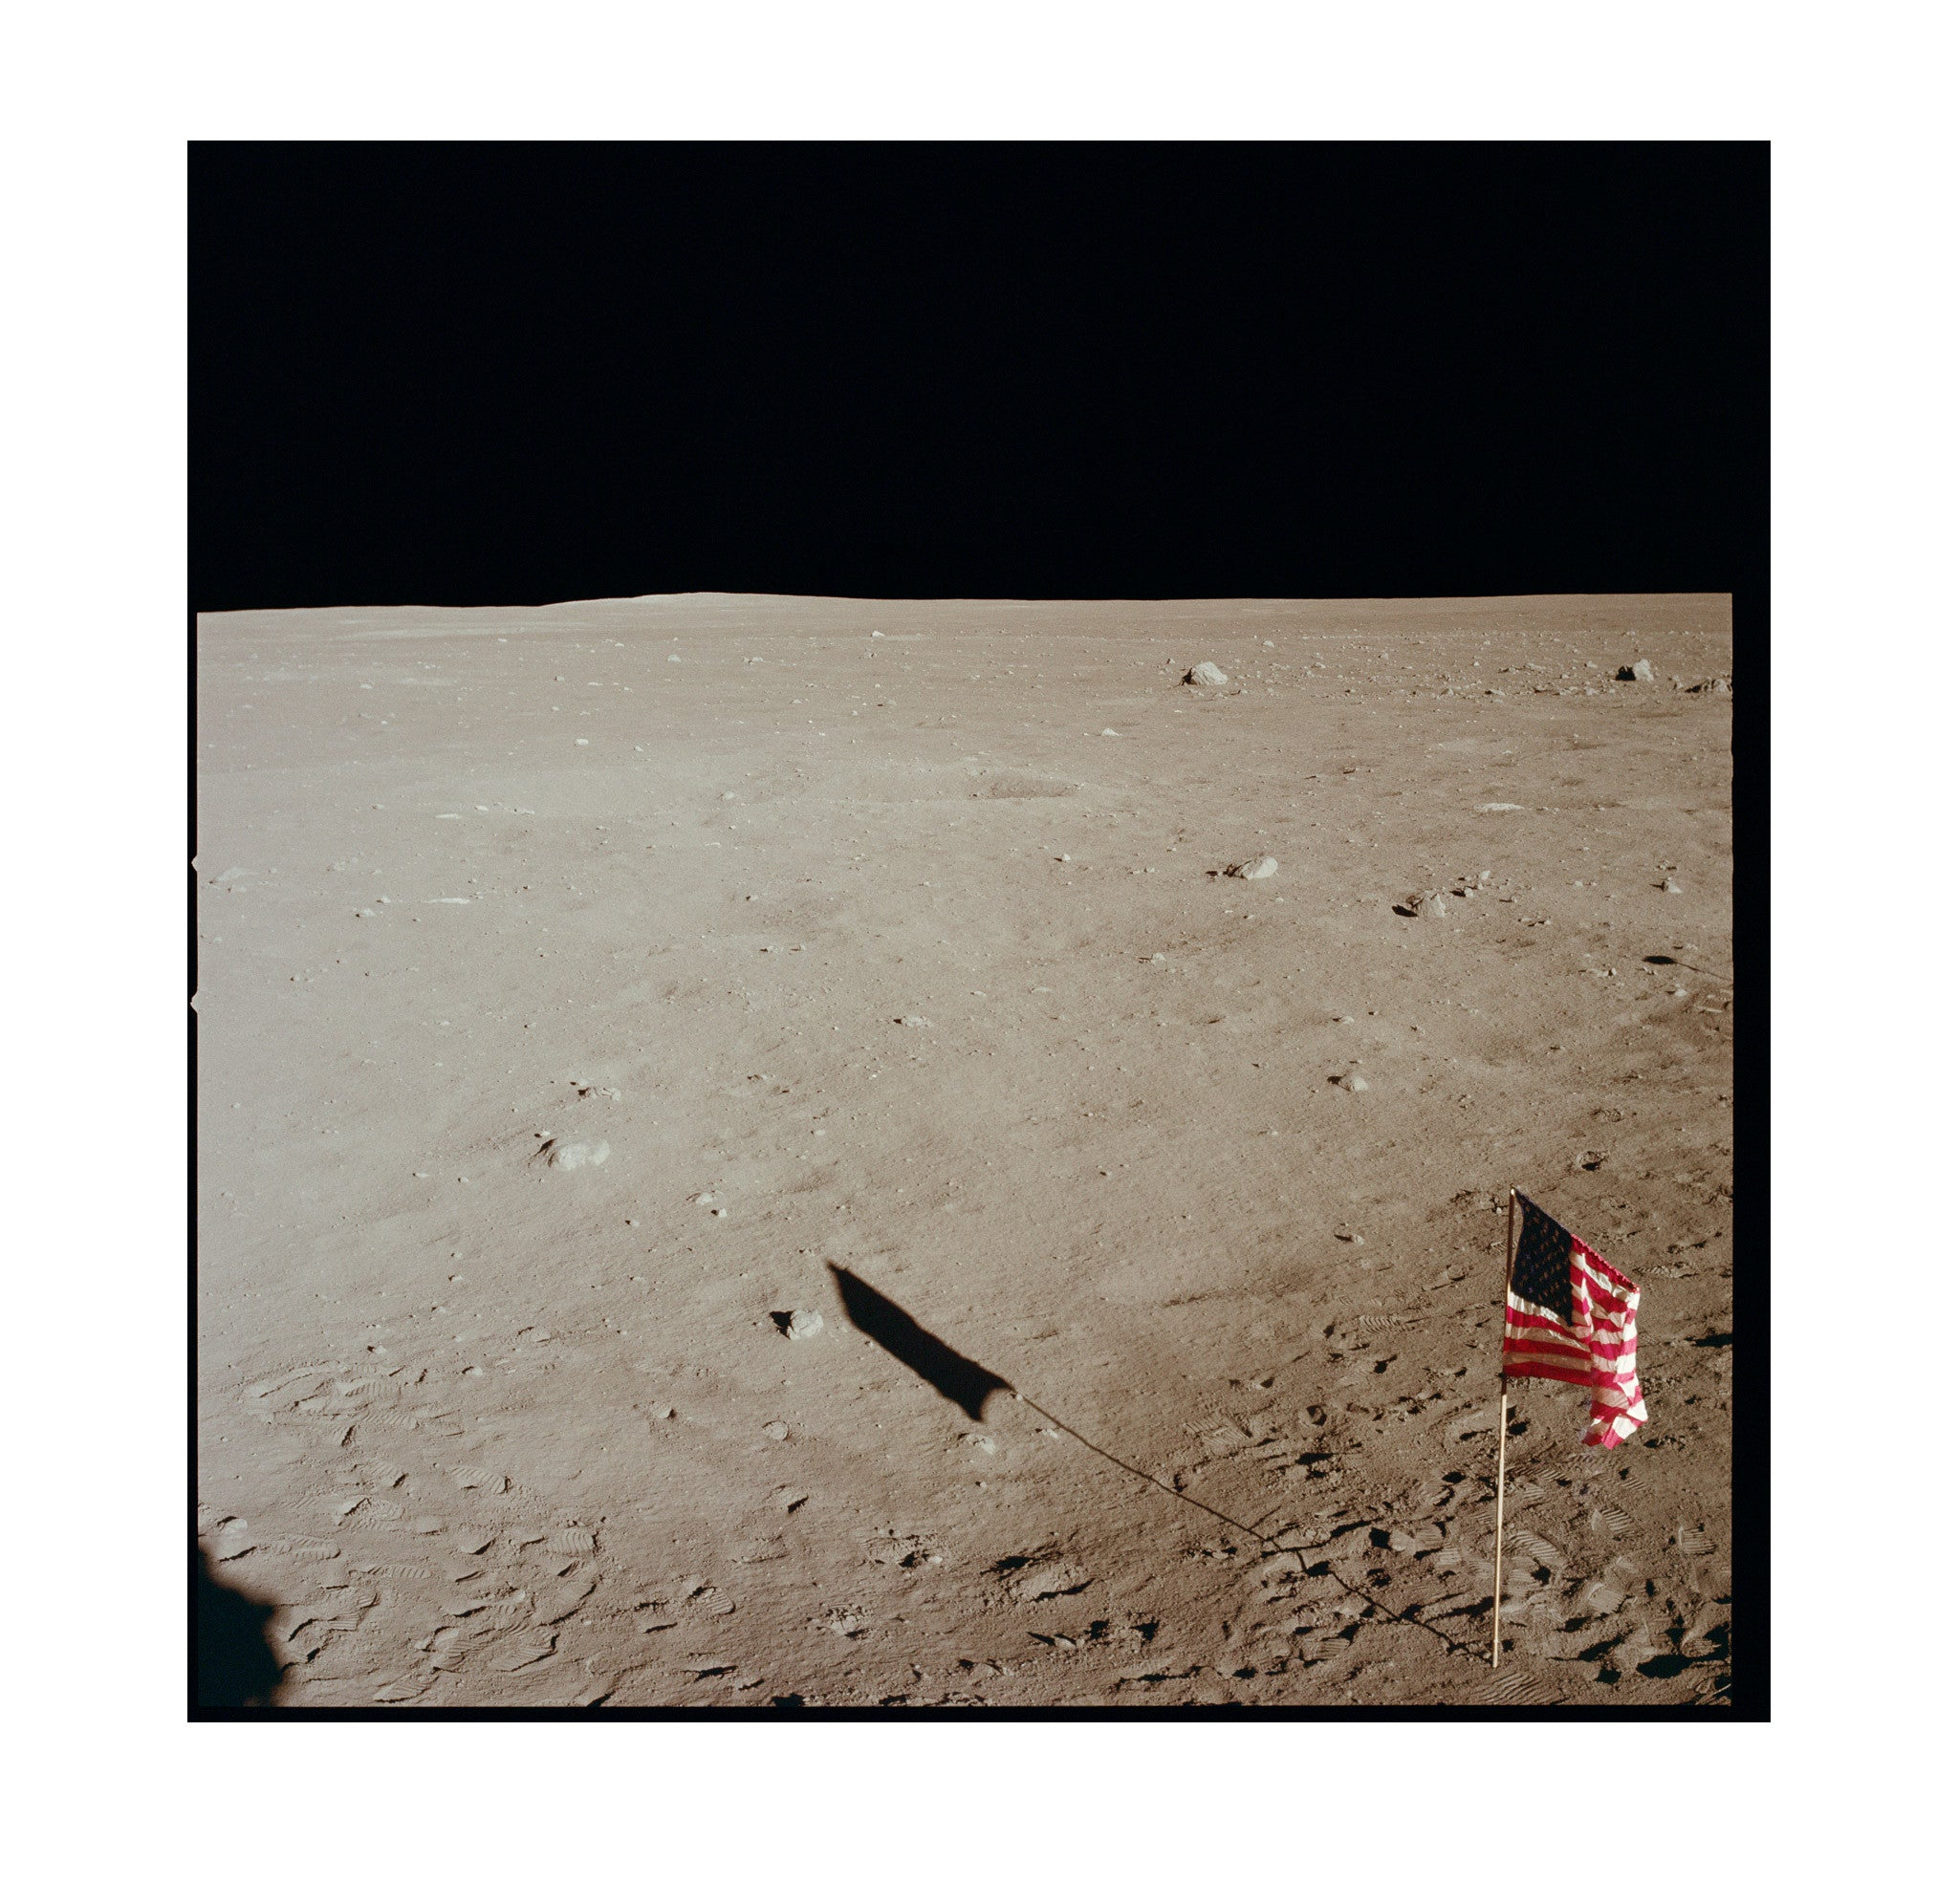 Apollo 11 – Tranquility Base